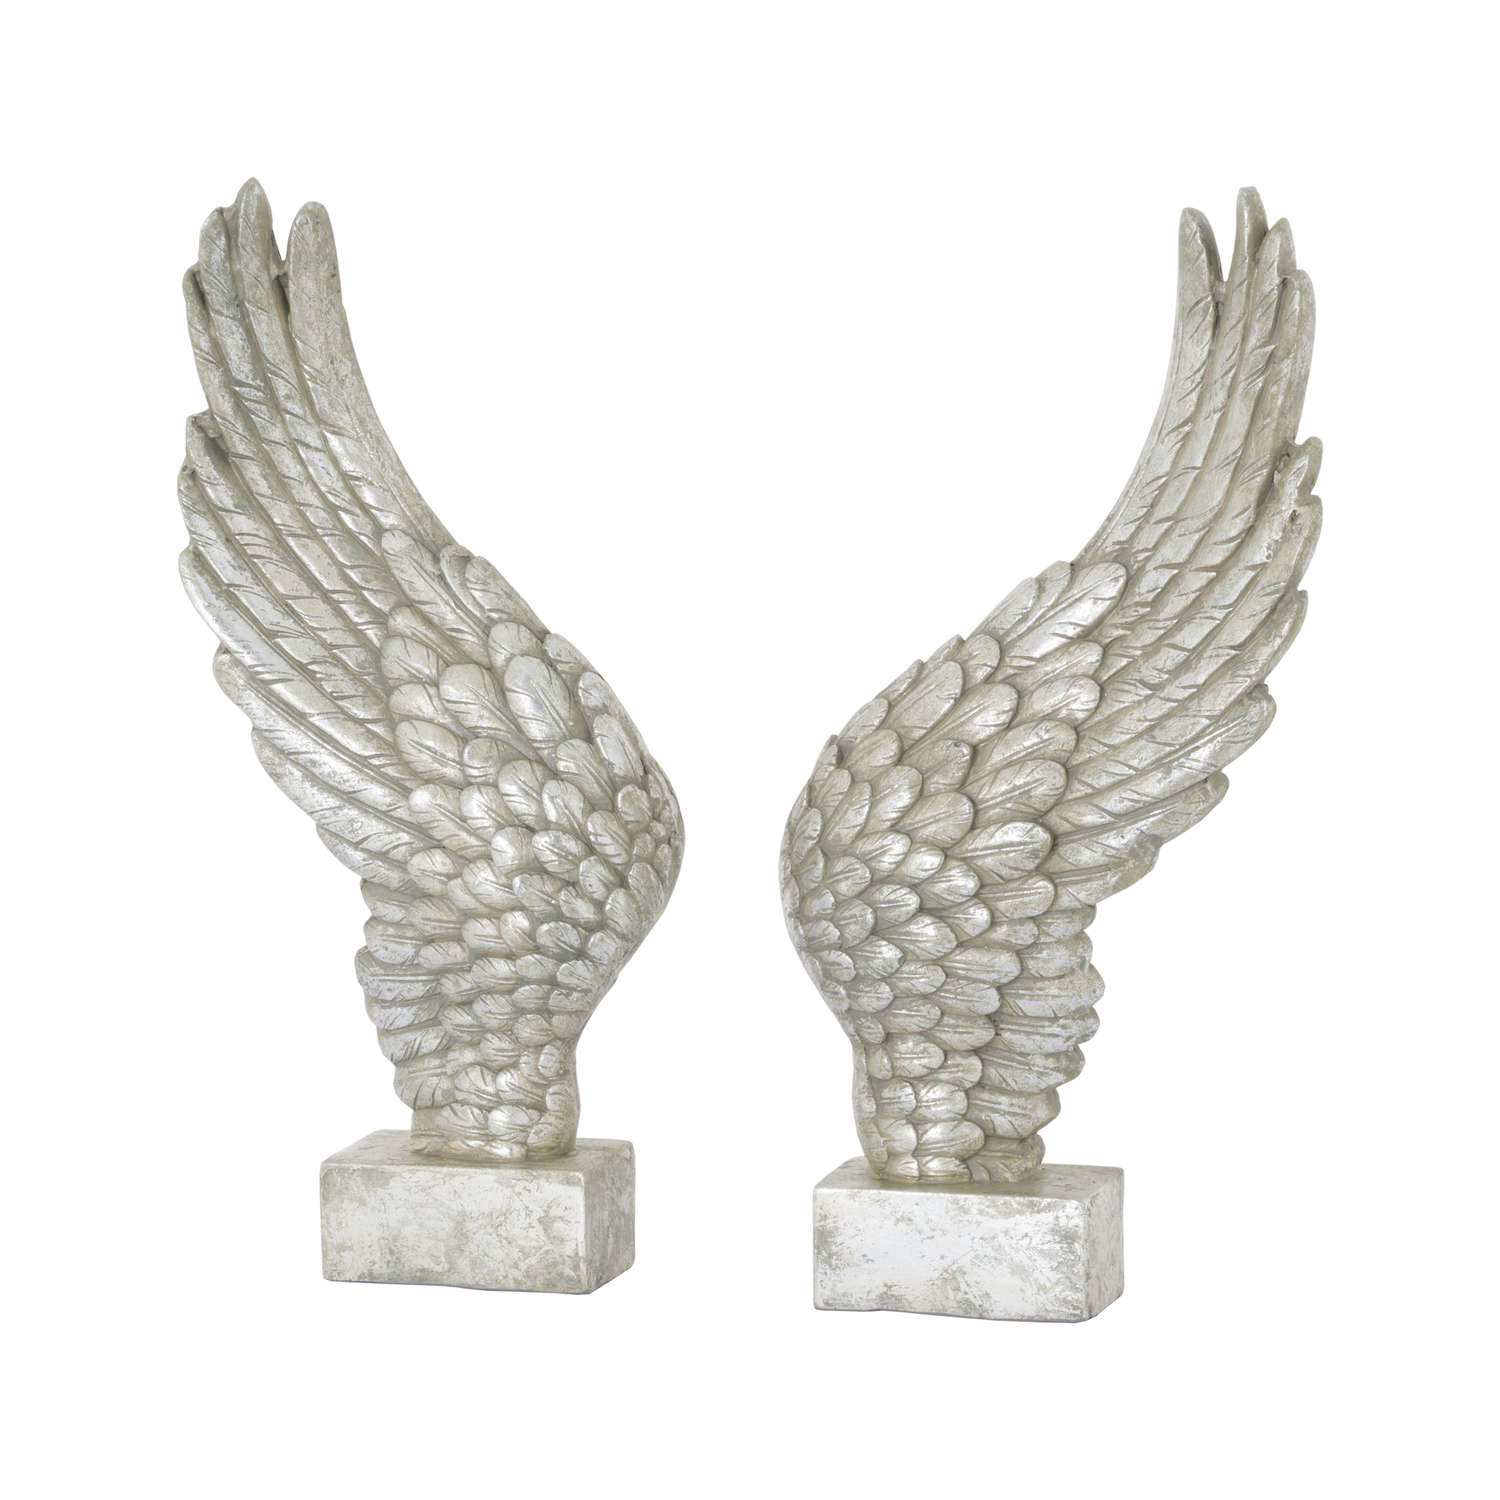 Hill Interiors Large Freestanding Antique Silver Angel Wings Ornament